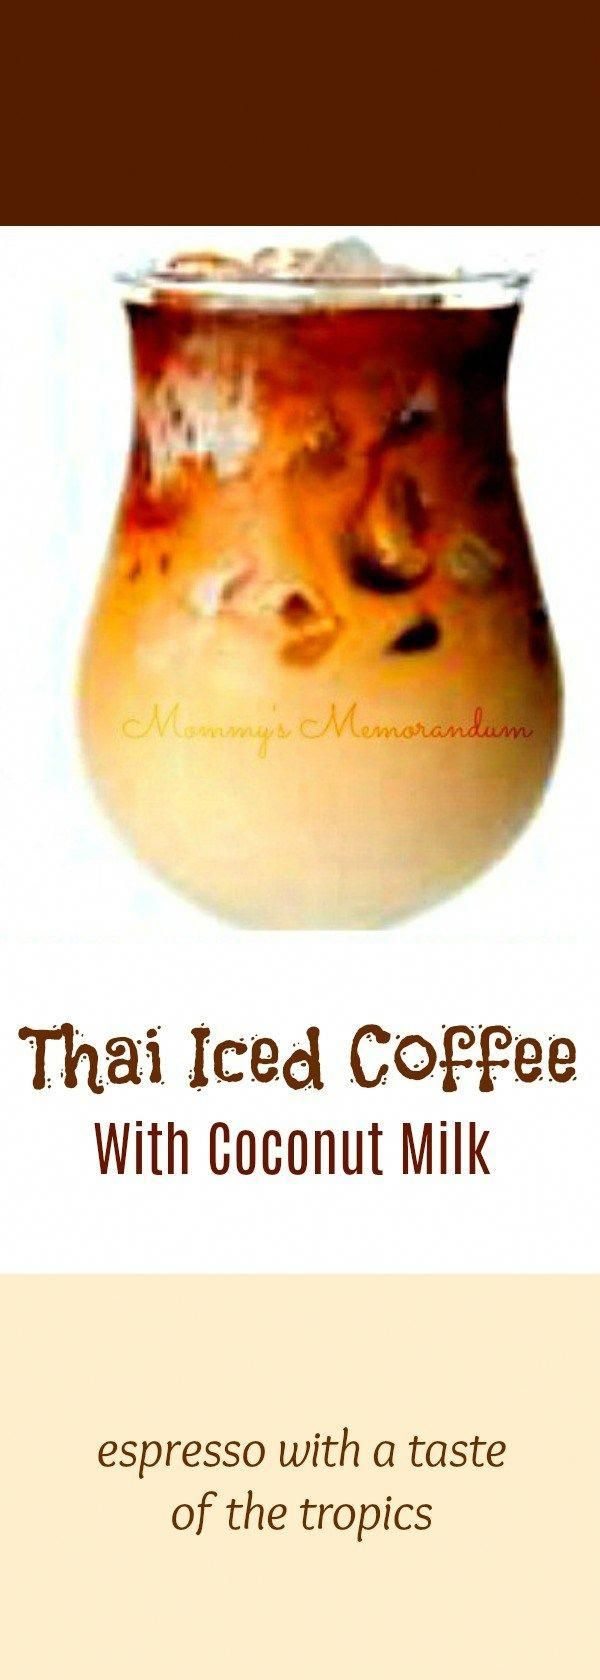 This Thai Iced Coffee recipe combines my love for espresso with a taste of the tropics in coconut milk. Enjoy! MILK,